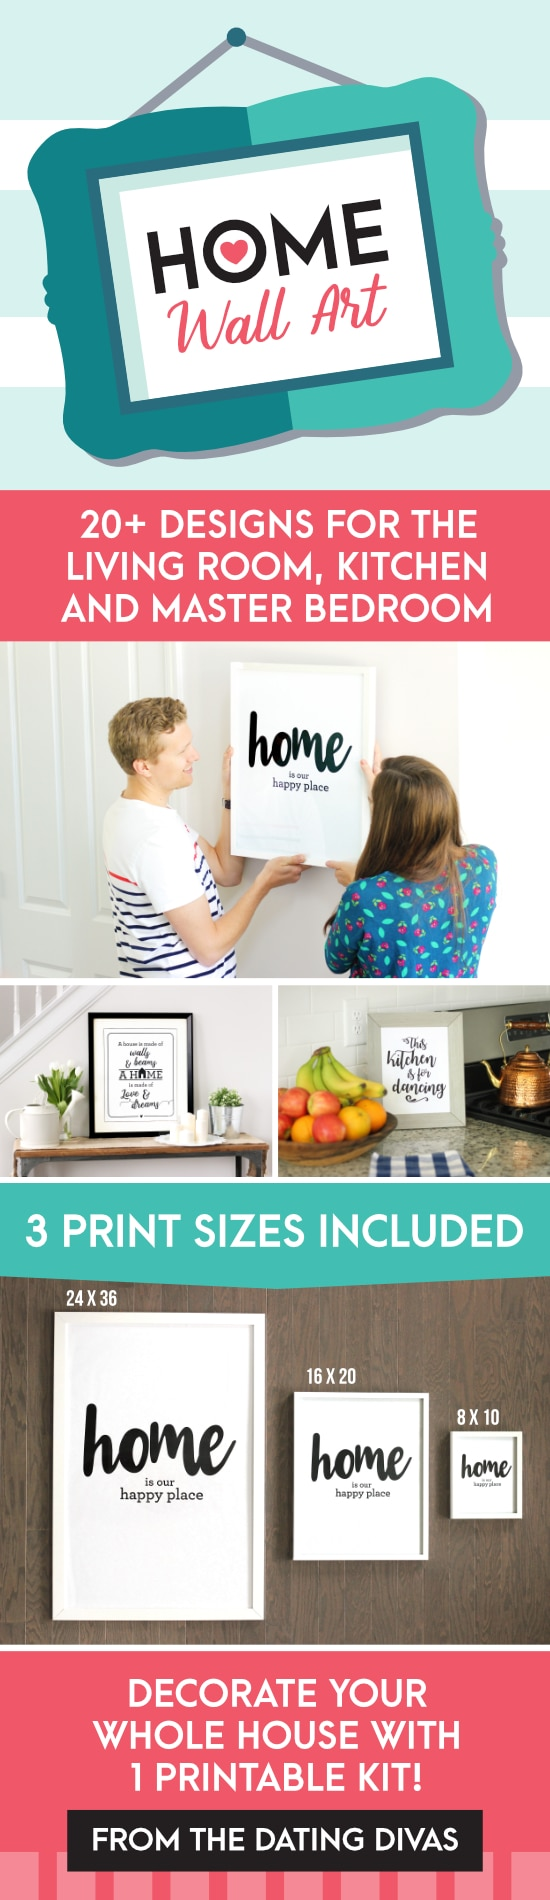 Printable Wall Art for different rooms in your home!